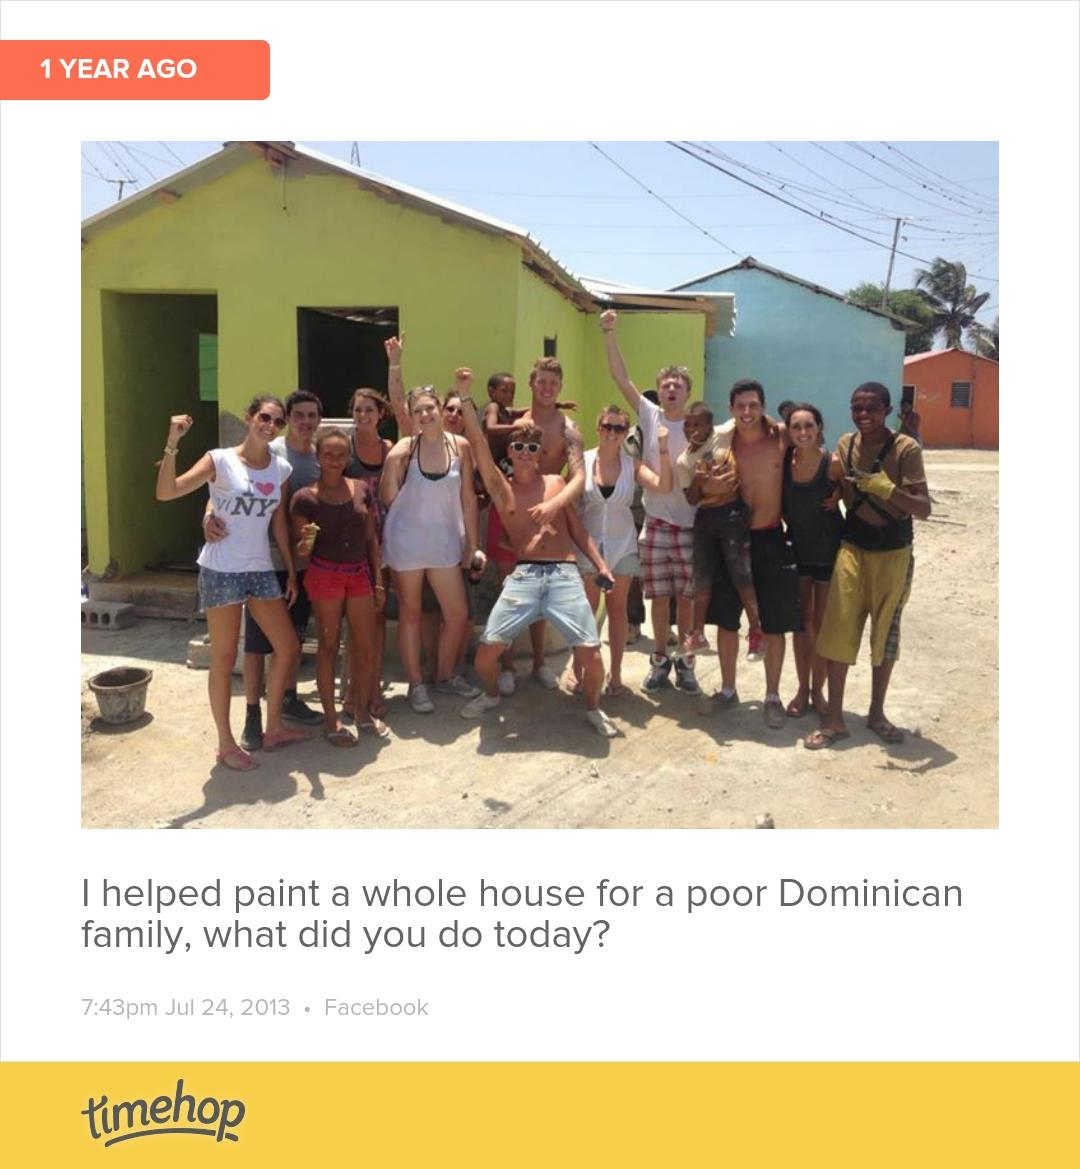 RT @jamie_oaten: Wow exactly a year ago today I took a day out of my holiday to help a Dominican family!!☺️ http://t.co/eKogZfITvc